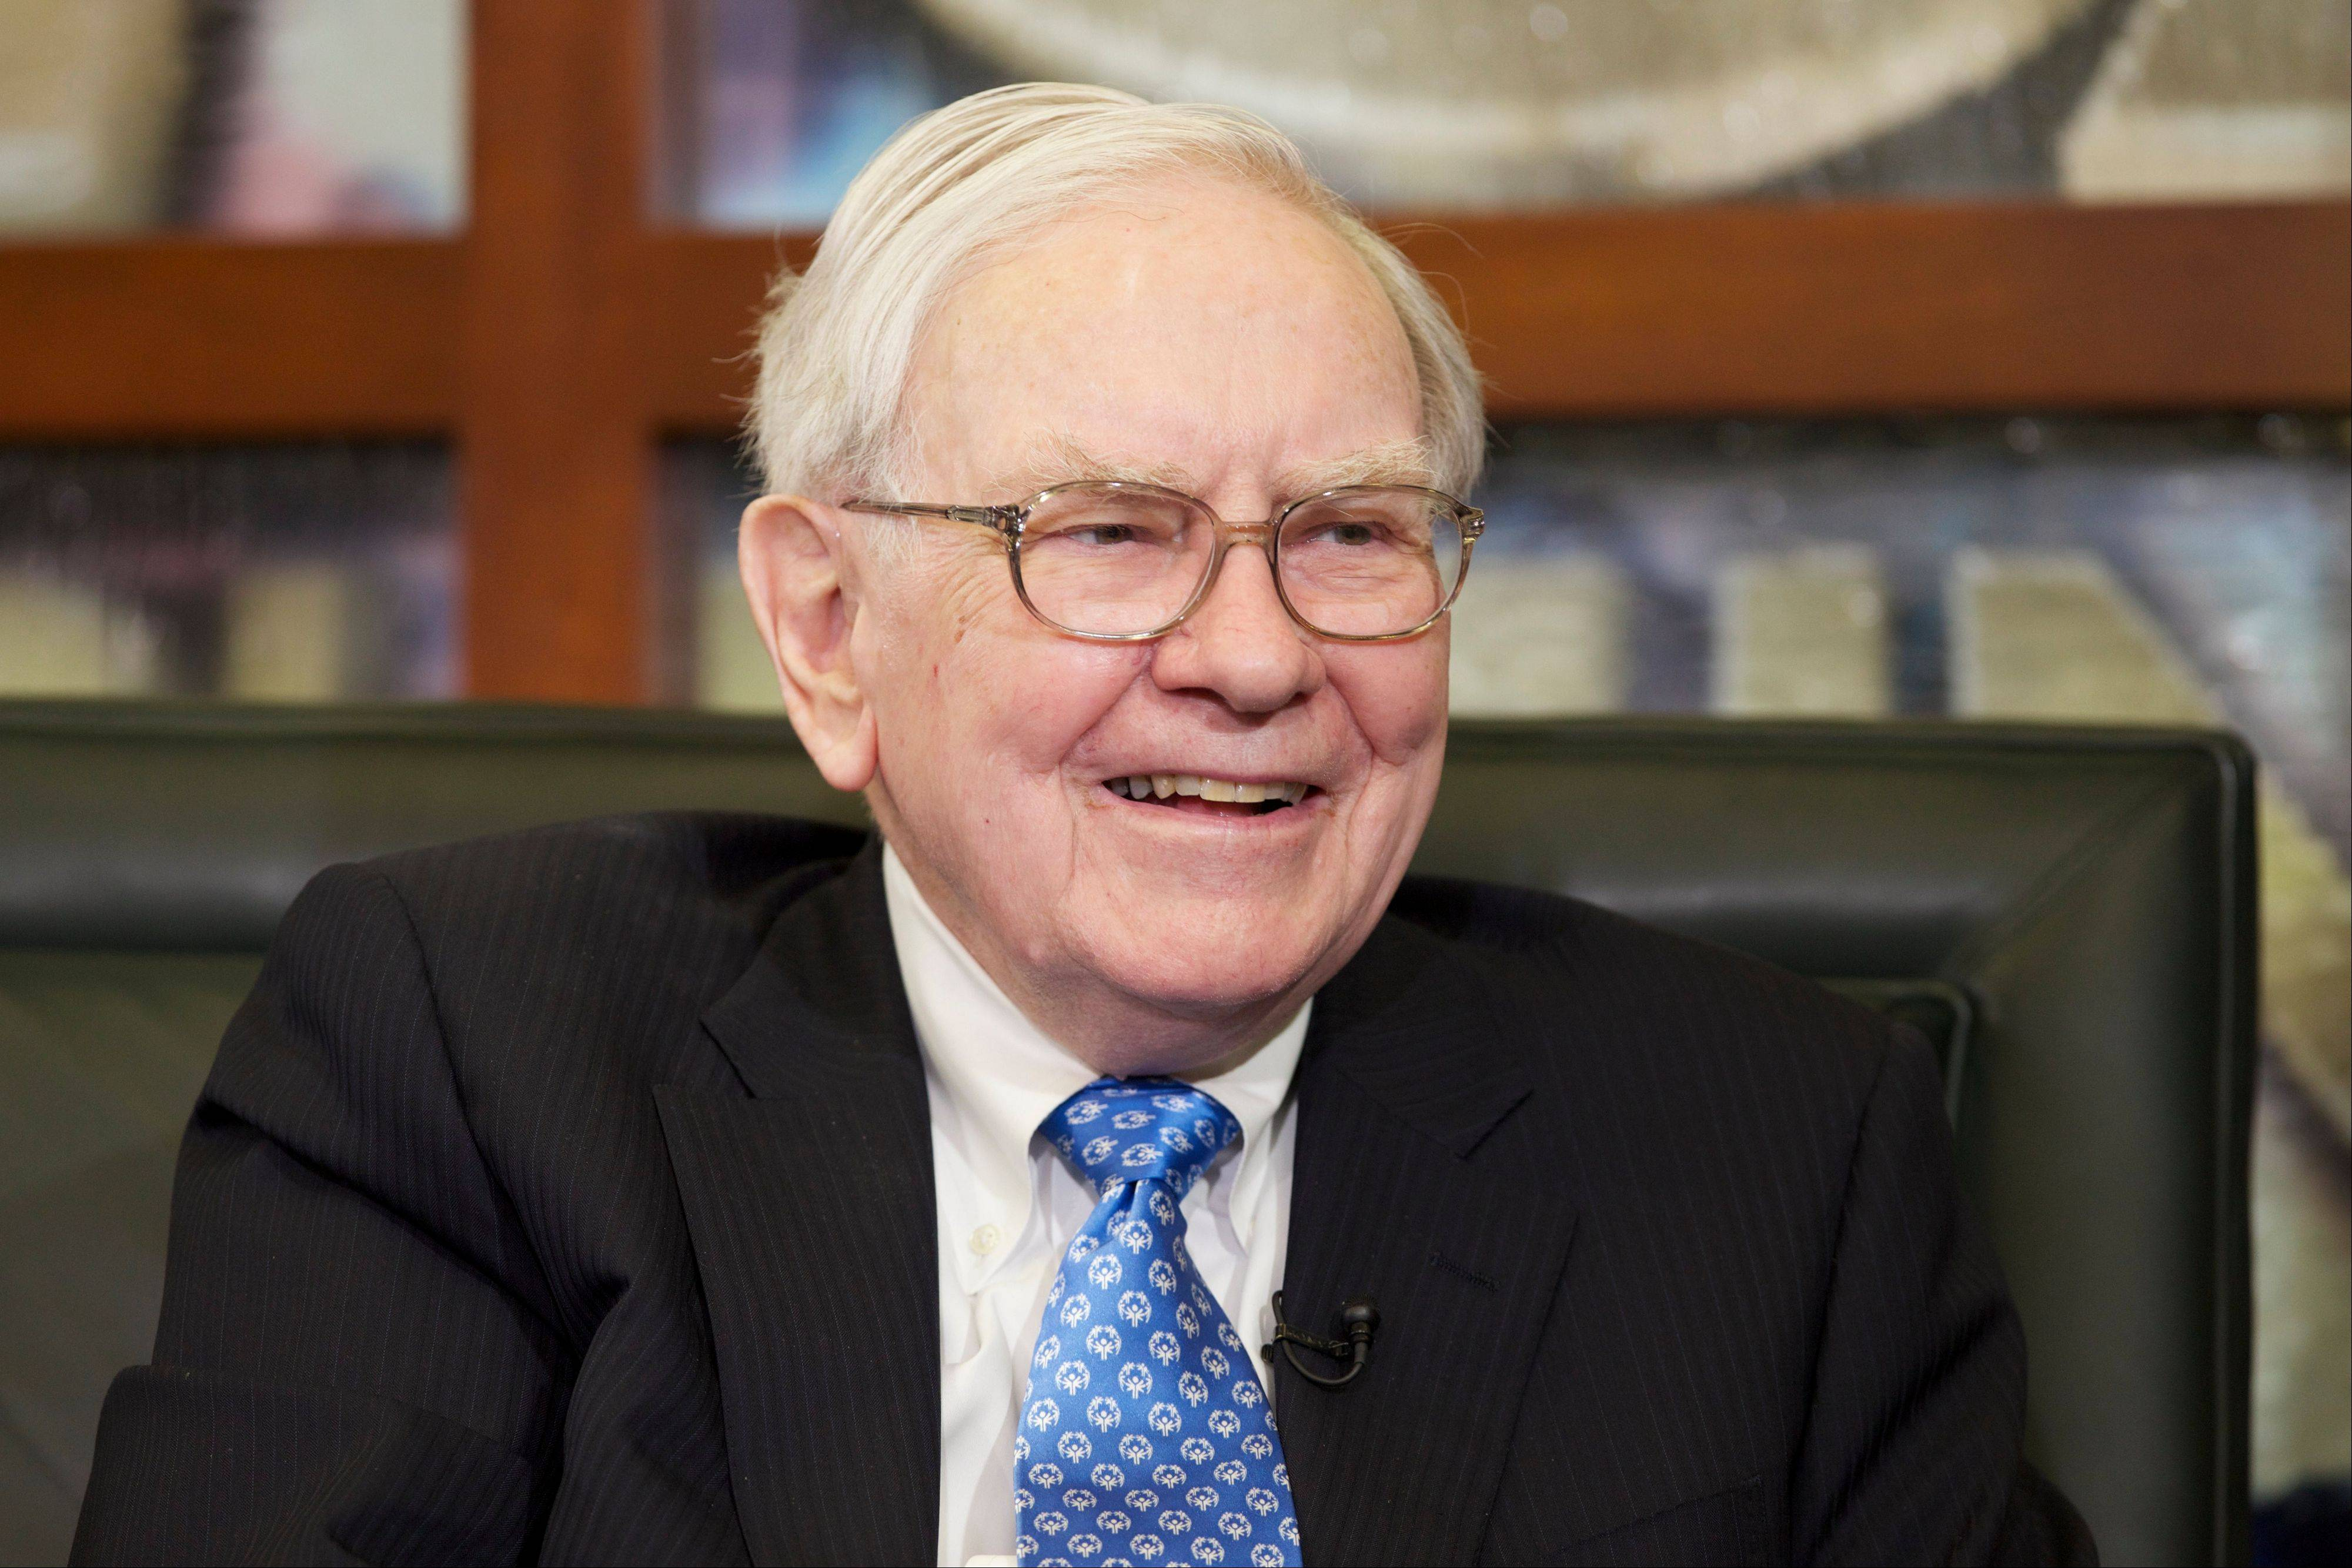 Associated Press/May 6, 2013Warren Buffett smiles during an interview with Liz Claman of the Fox Business Network in Omaha, Neb. The Berkshire Hathaway company reported quarterly earnings on Friday.